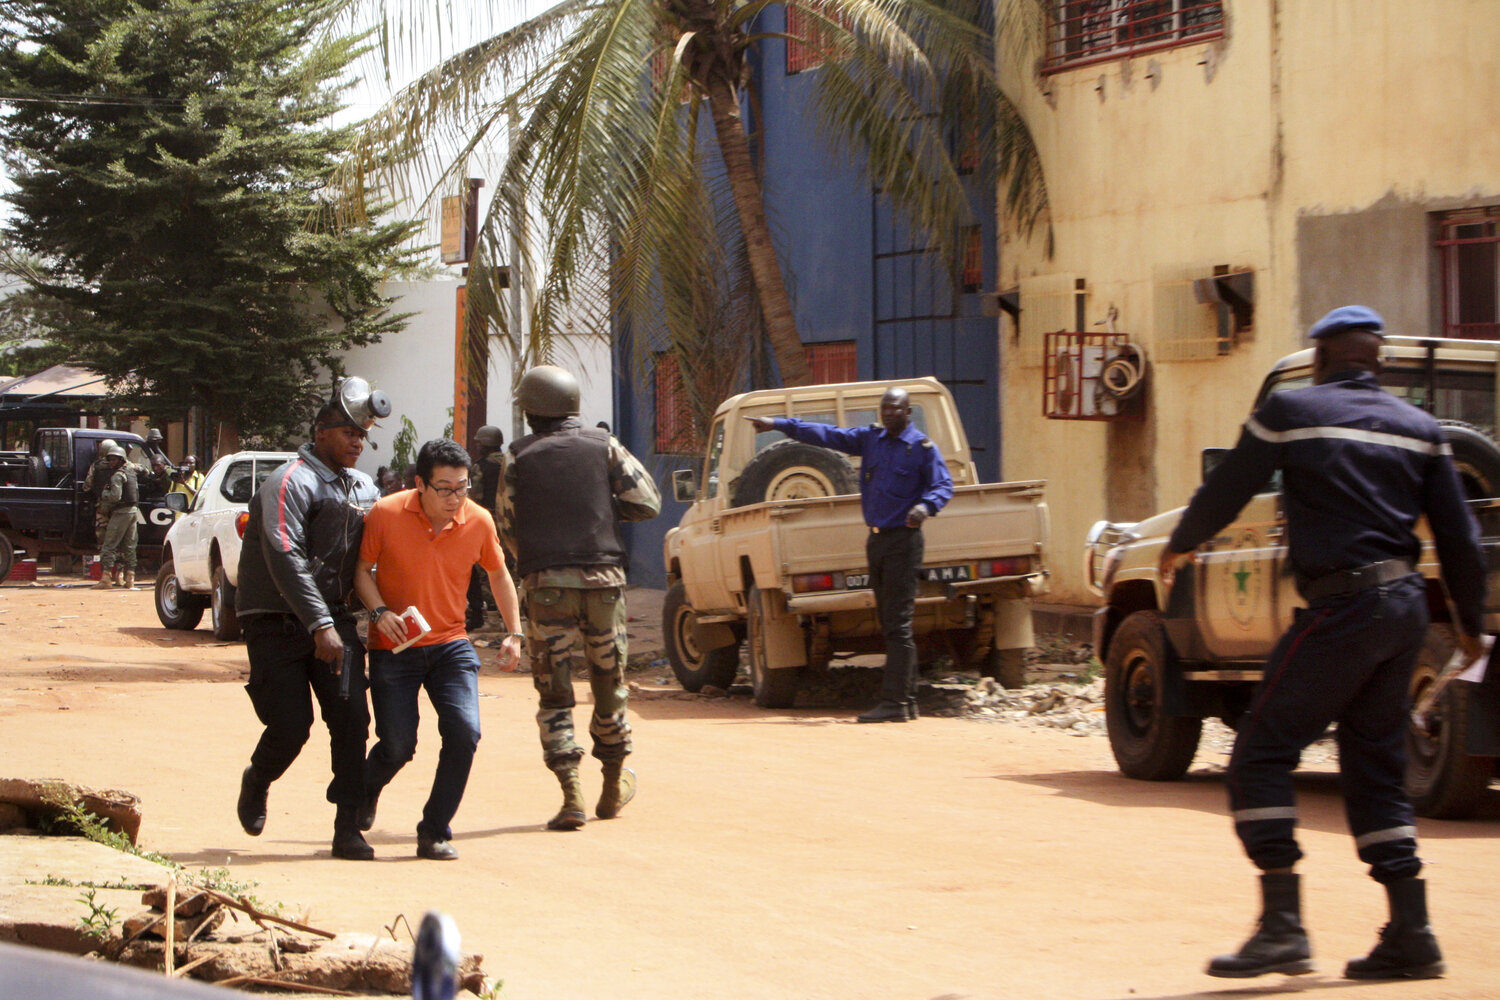 Malian troops assist a hostage to safety near the Radisson Blu hotel in Bamako, Mali, on Friday. Gunmen went on a shooting rampage at the hotel, seizing 170 guests and staff.